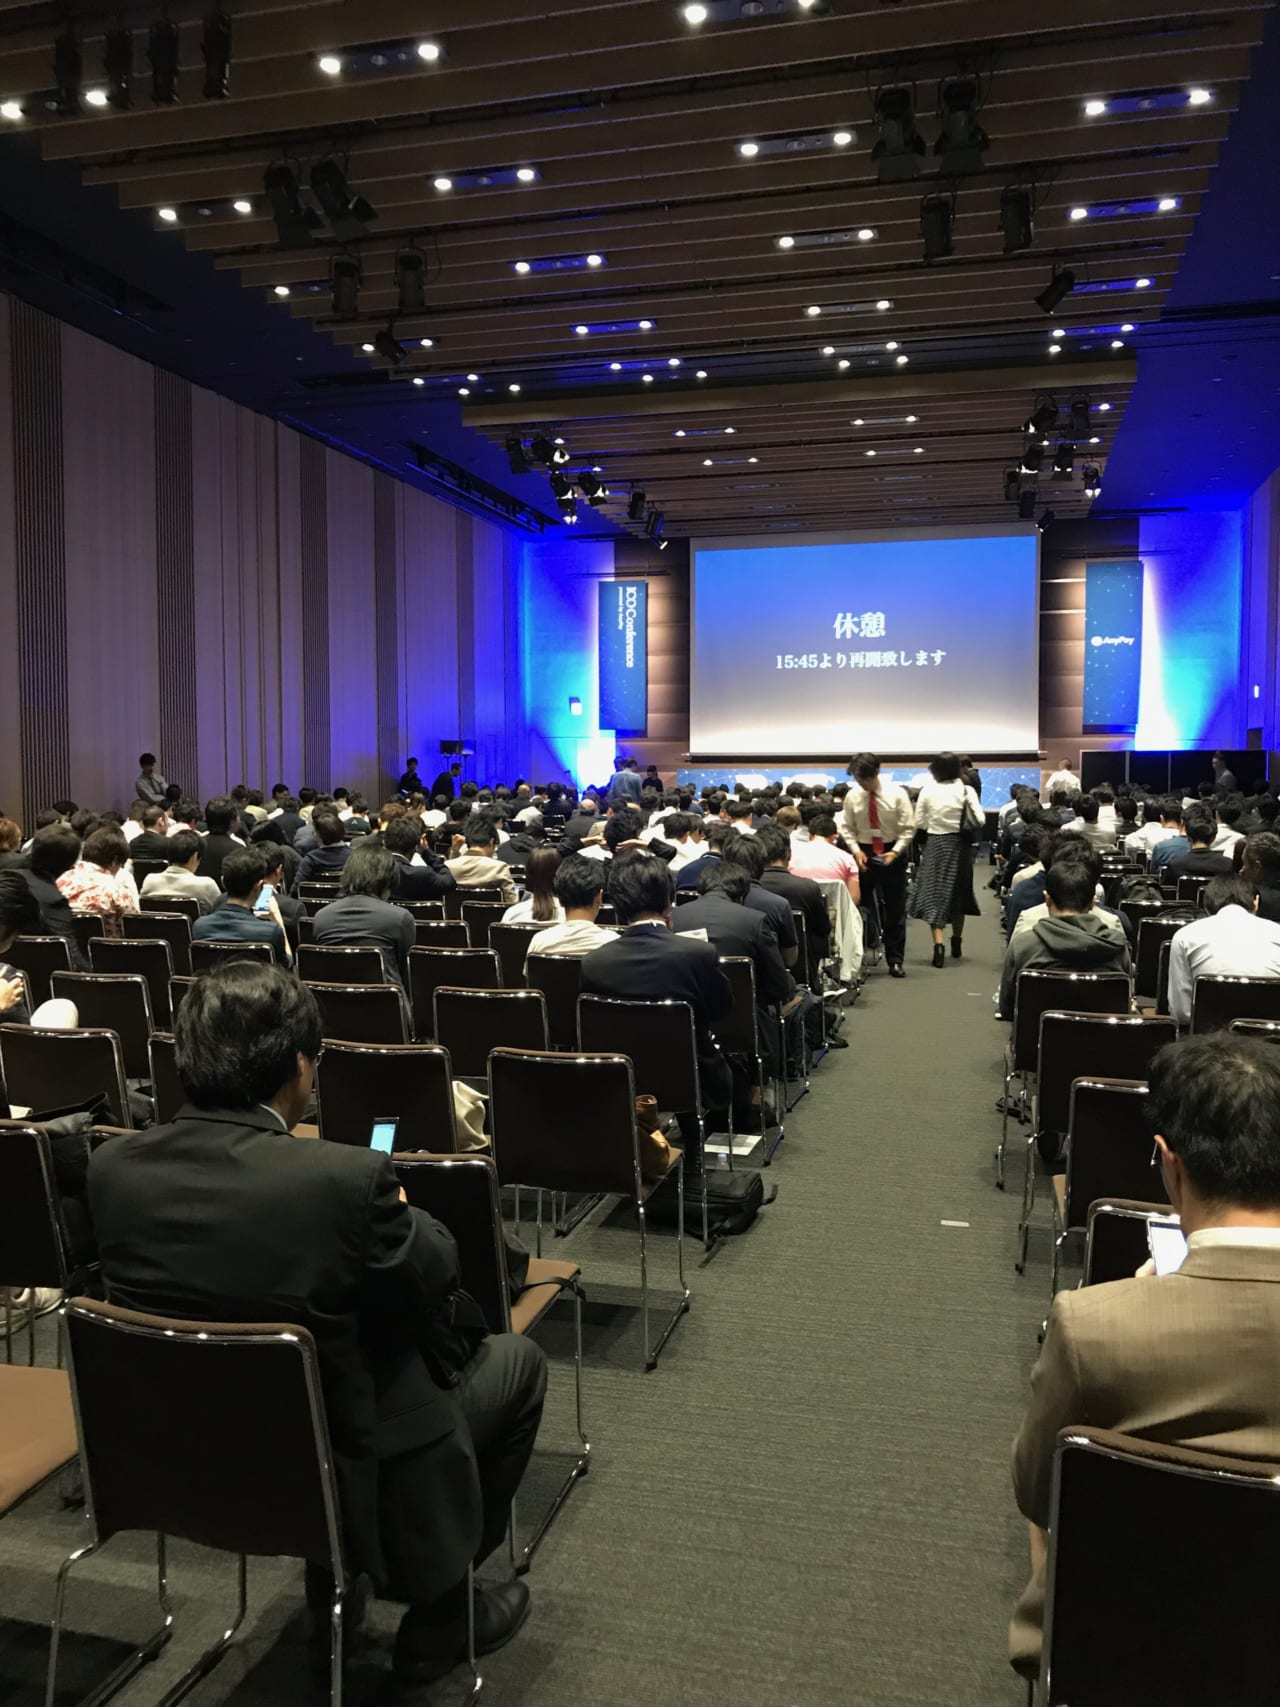 ICO Conferenceの会場内の様子